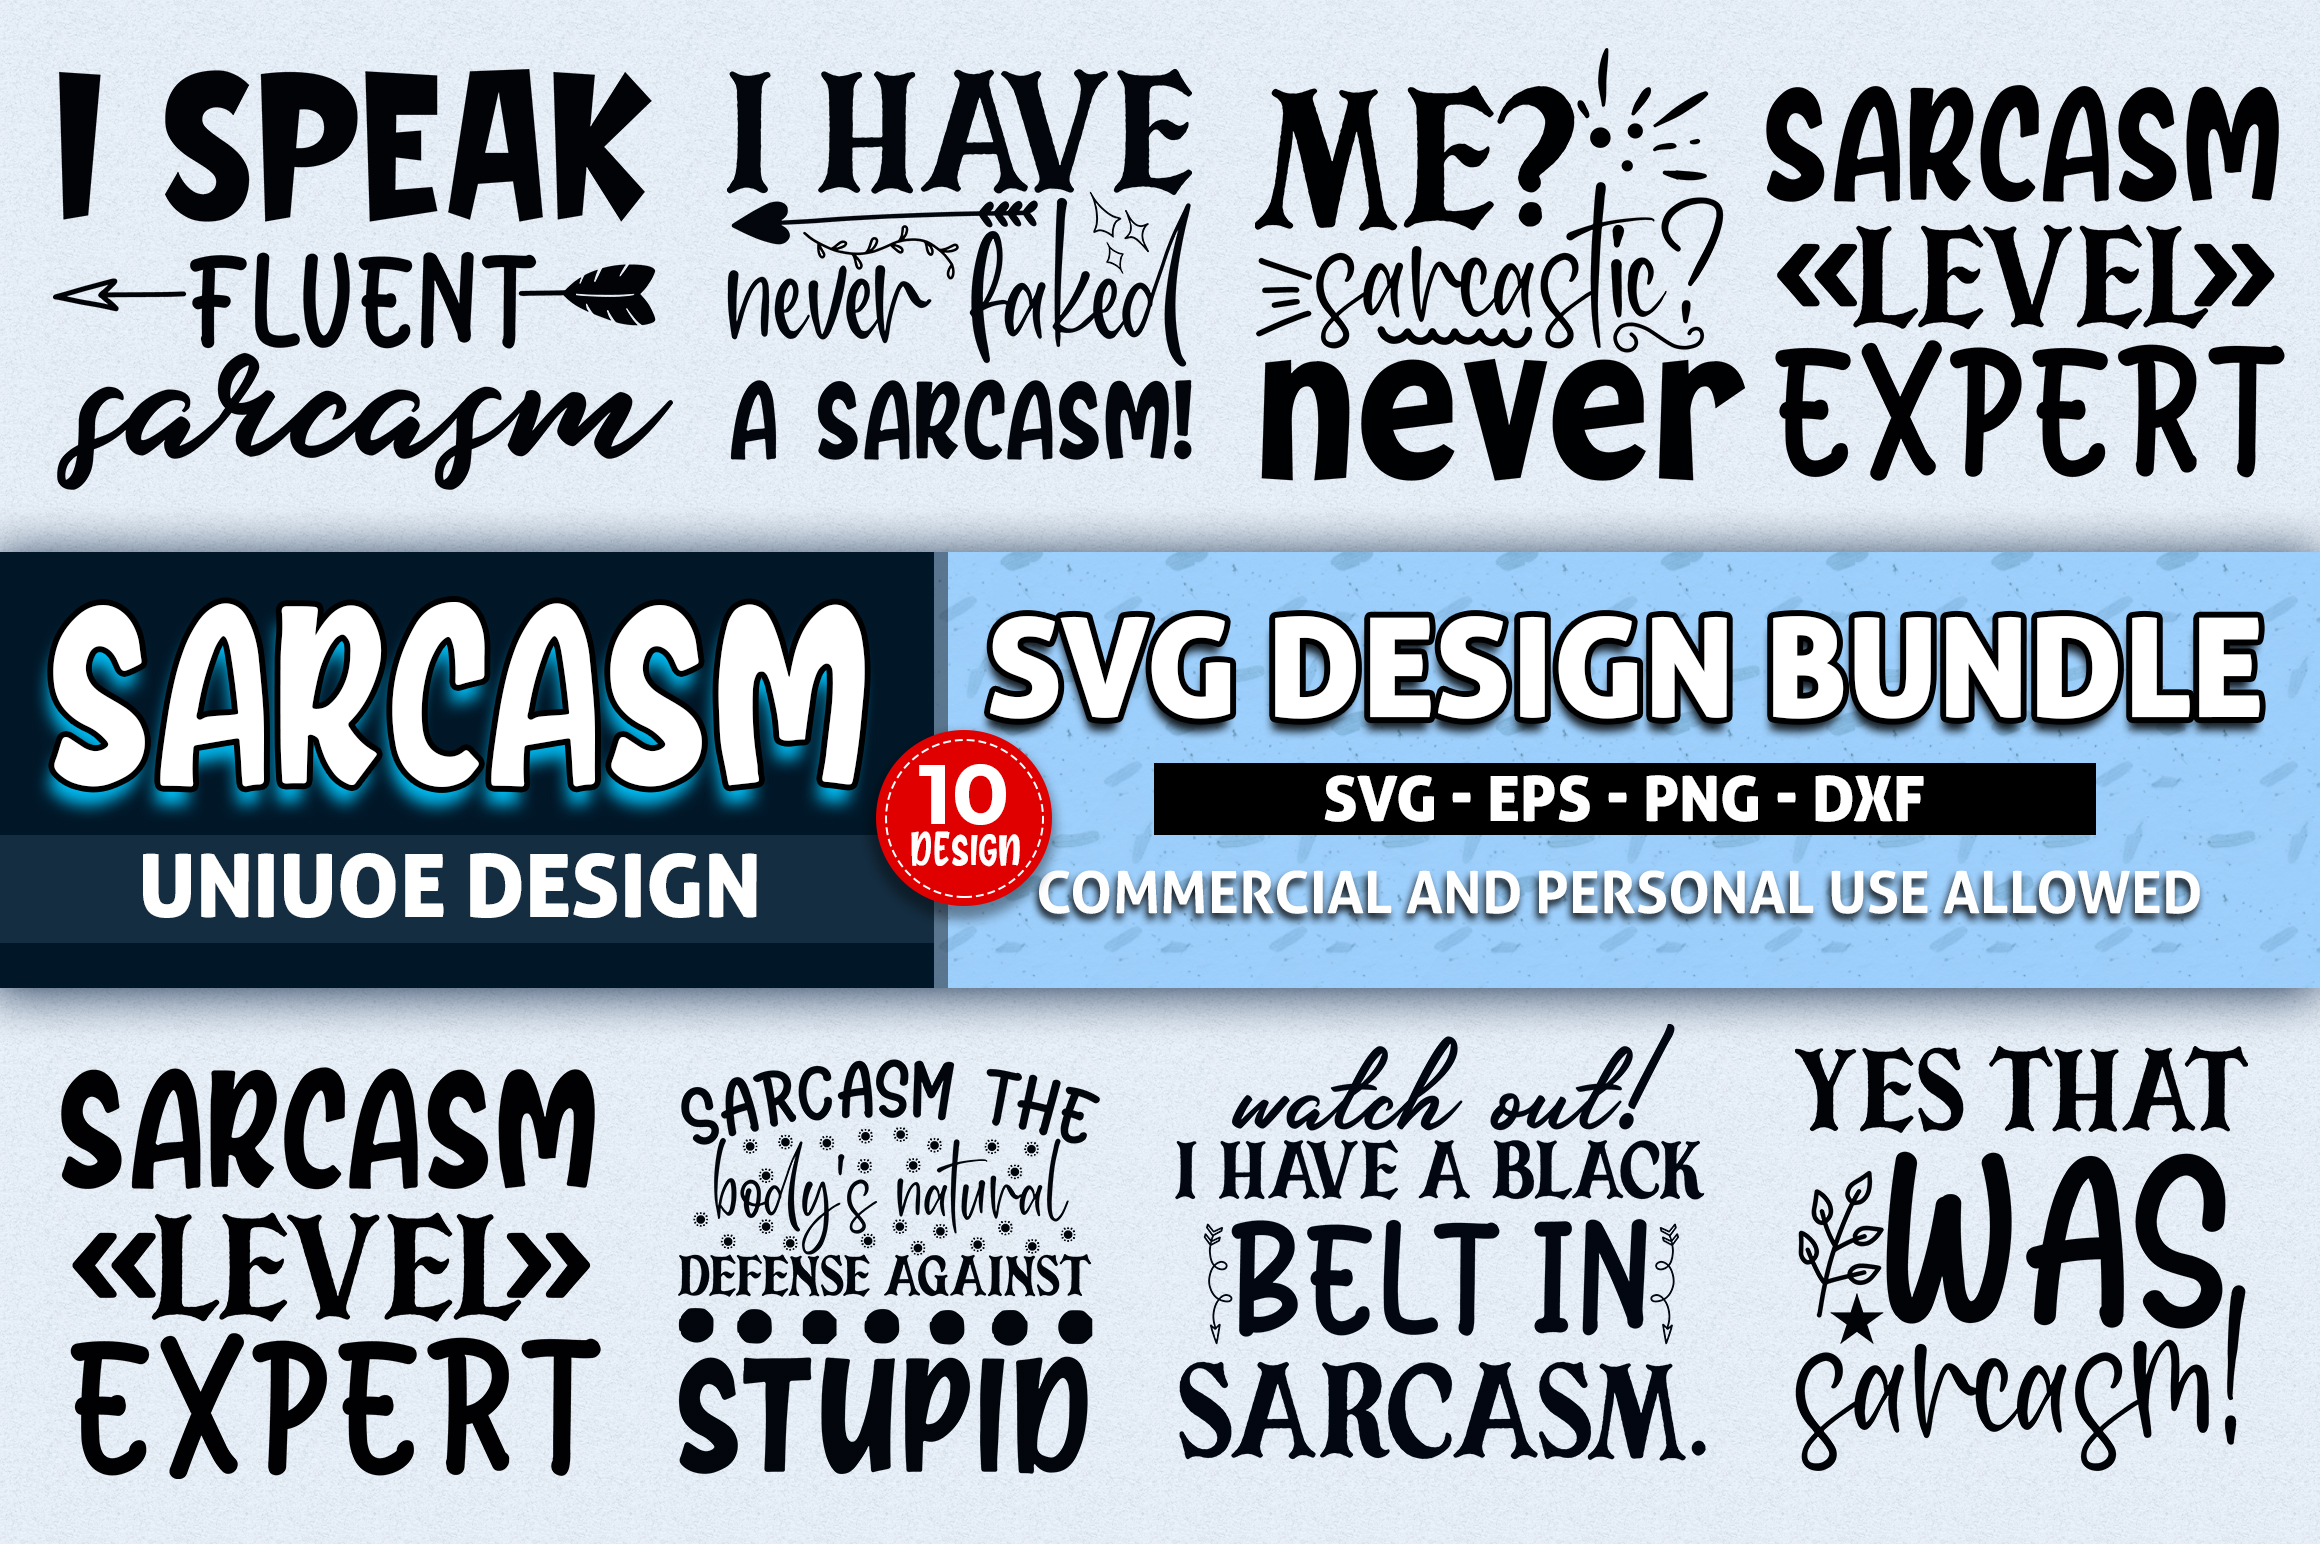 510 SVG DESIGN THE MIGHTY BUNDLE |32 DIFFERENT BUNDLES example image 26